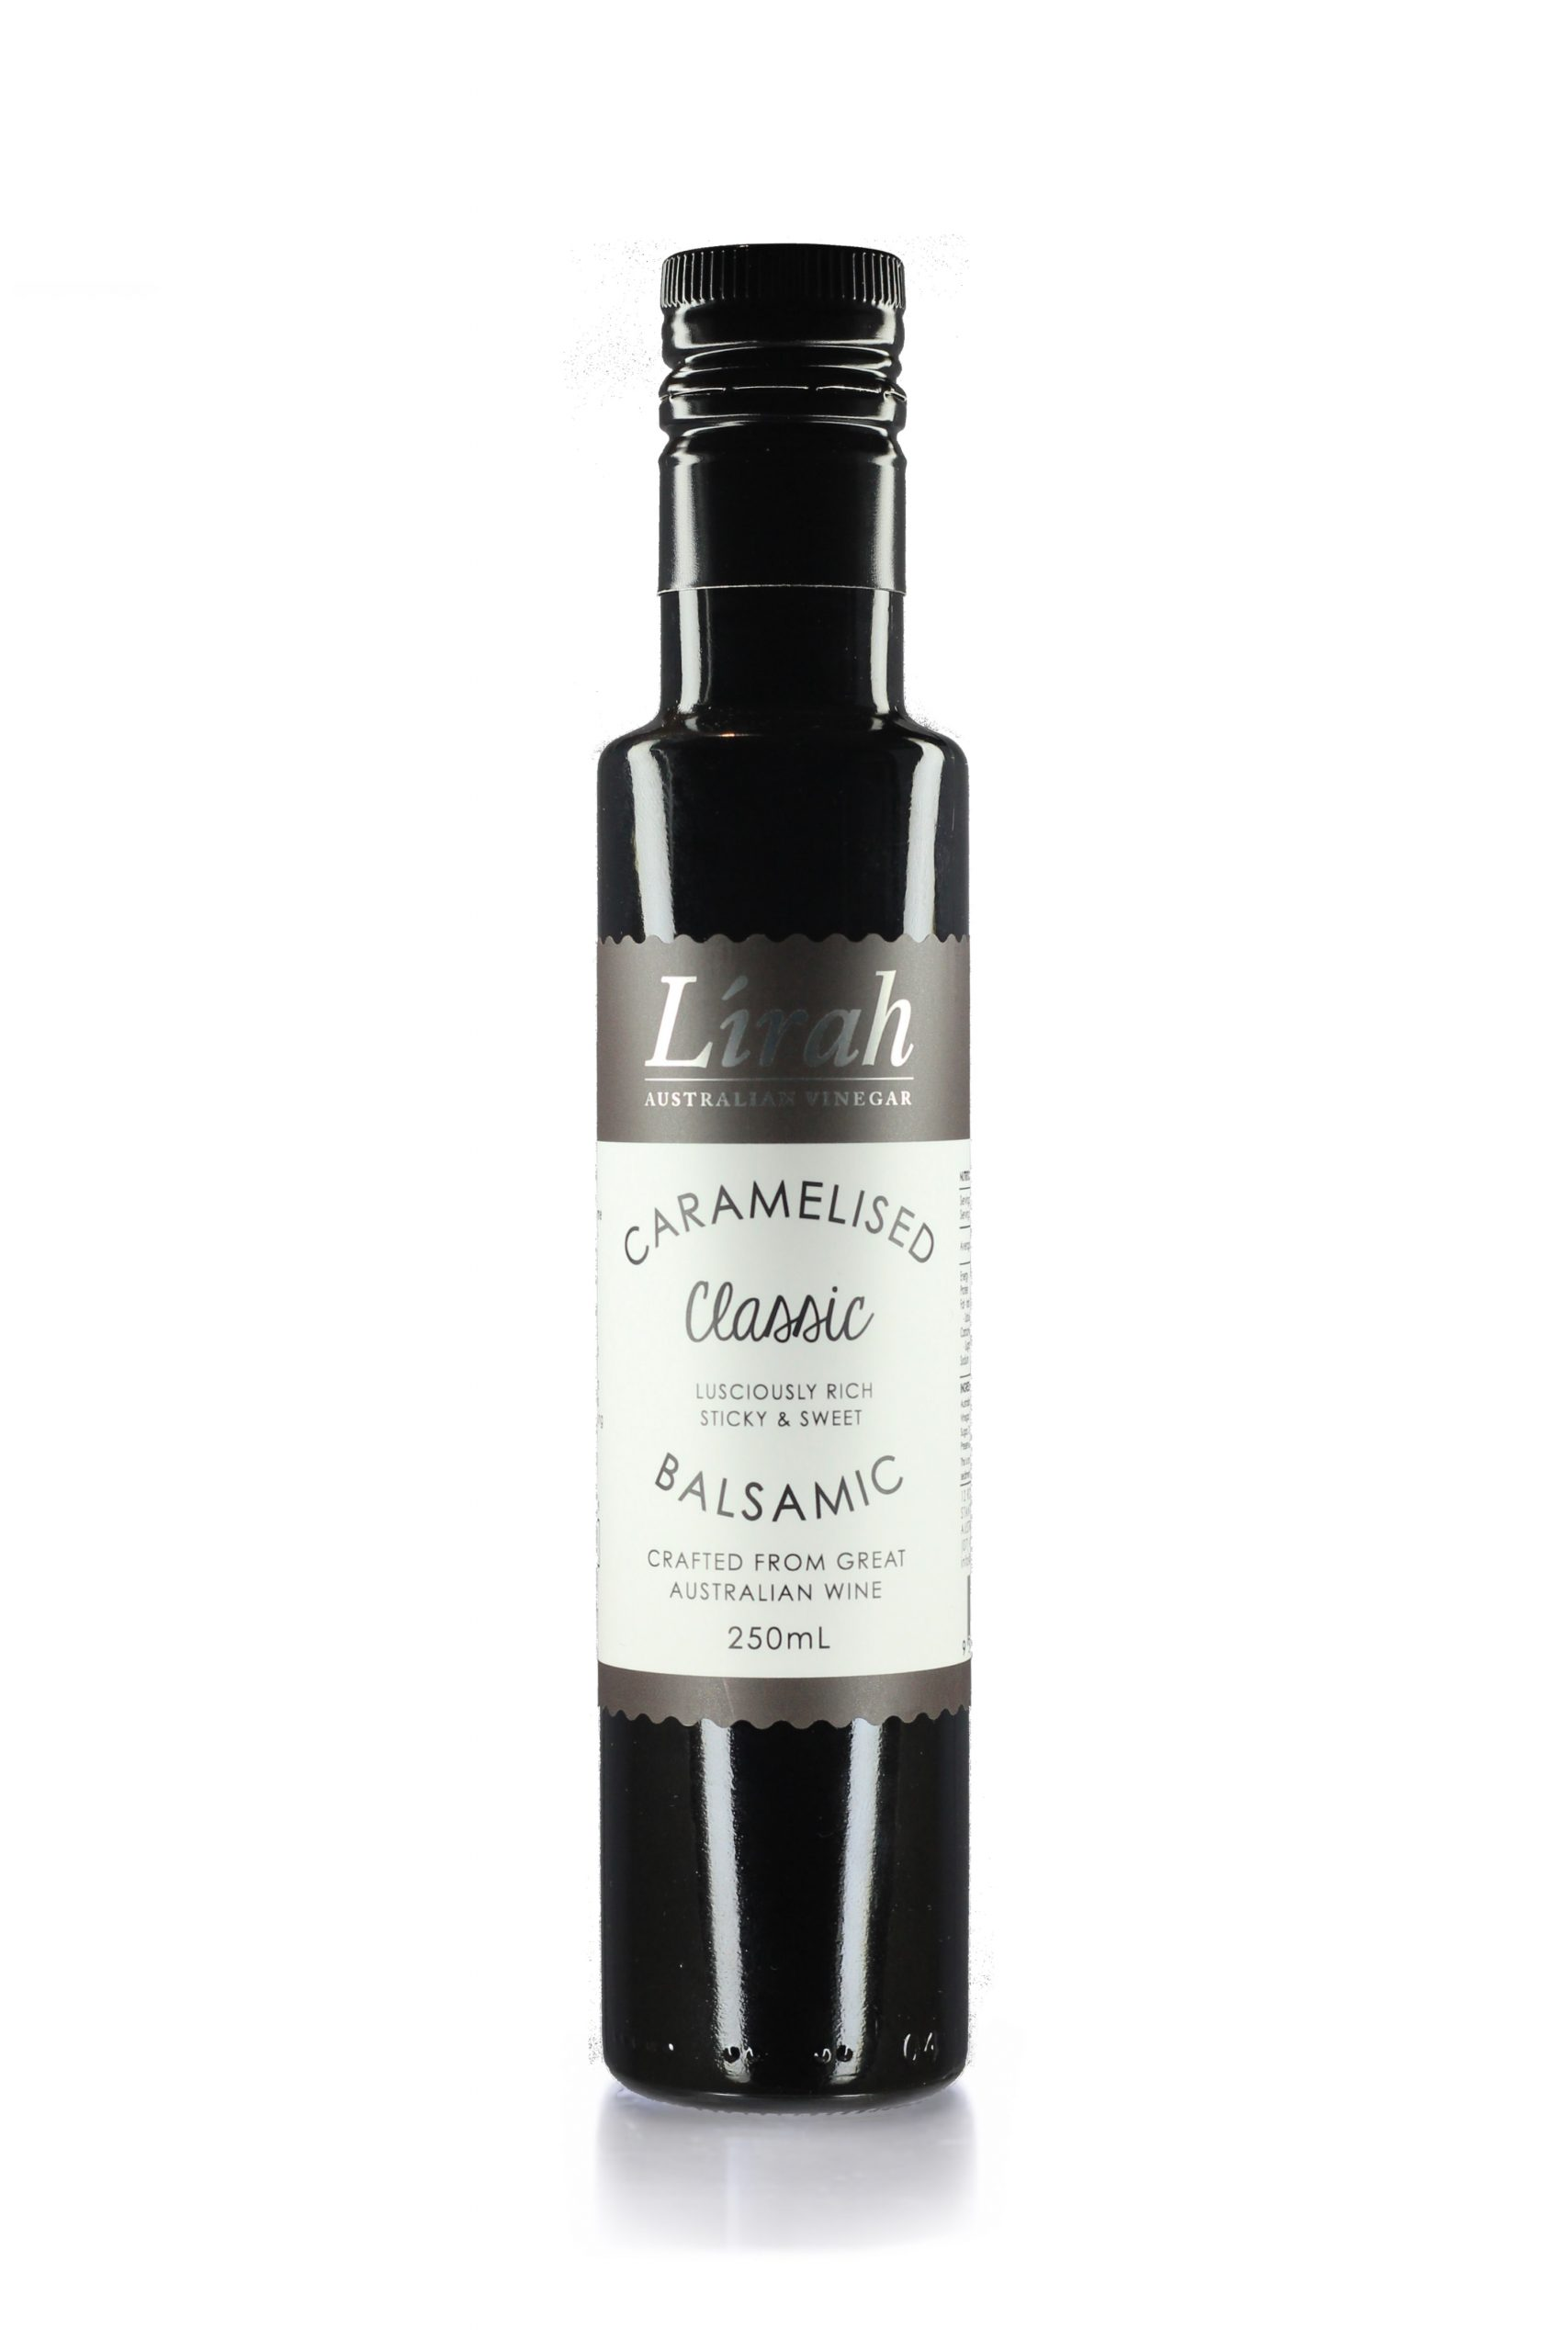 Caramelised Classic Balsamic 250mL